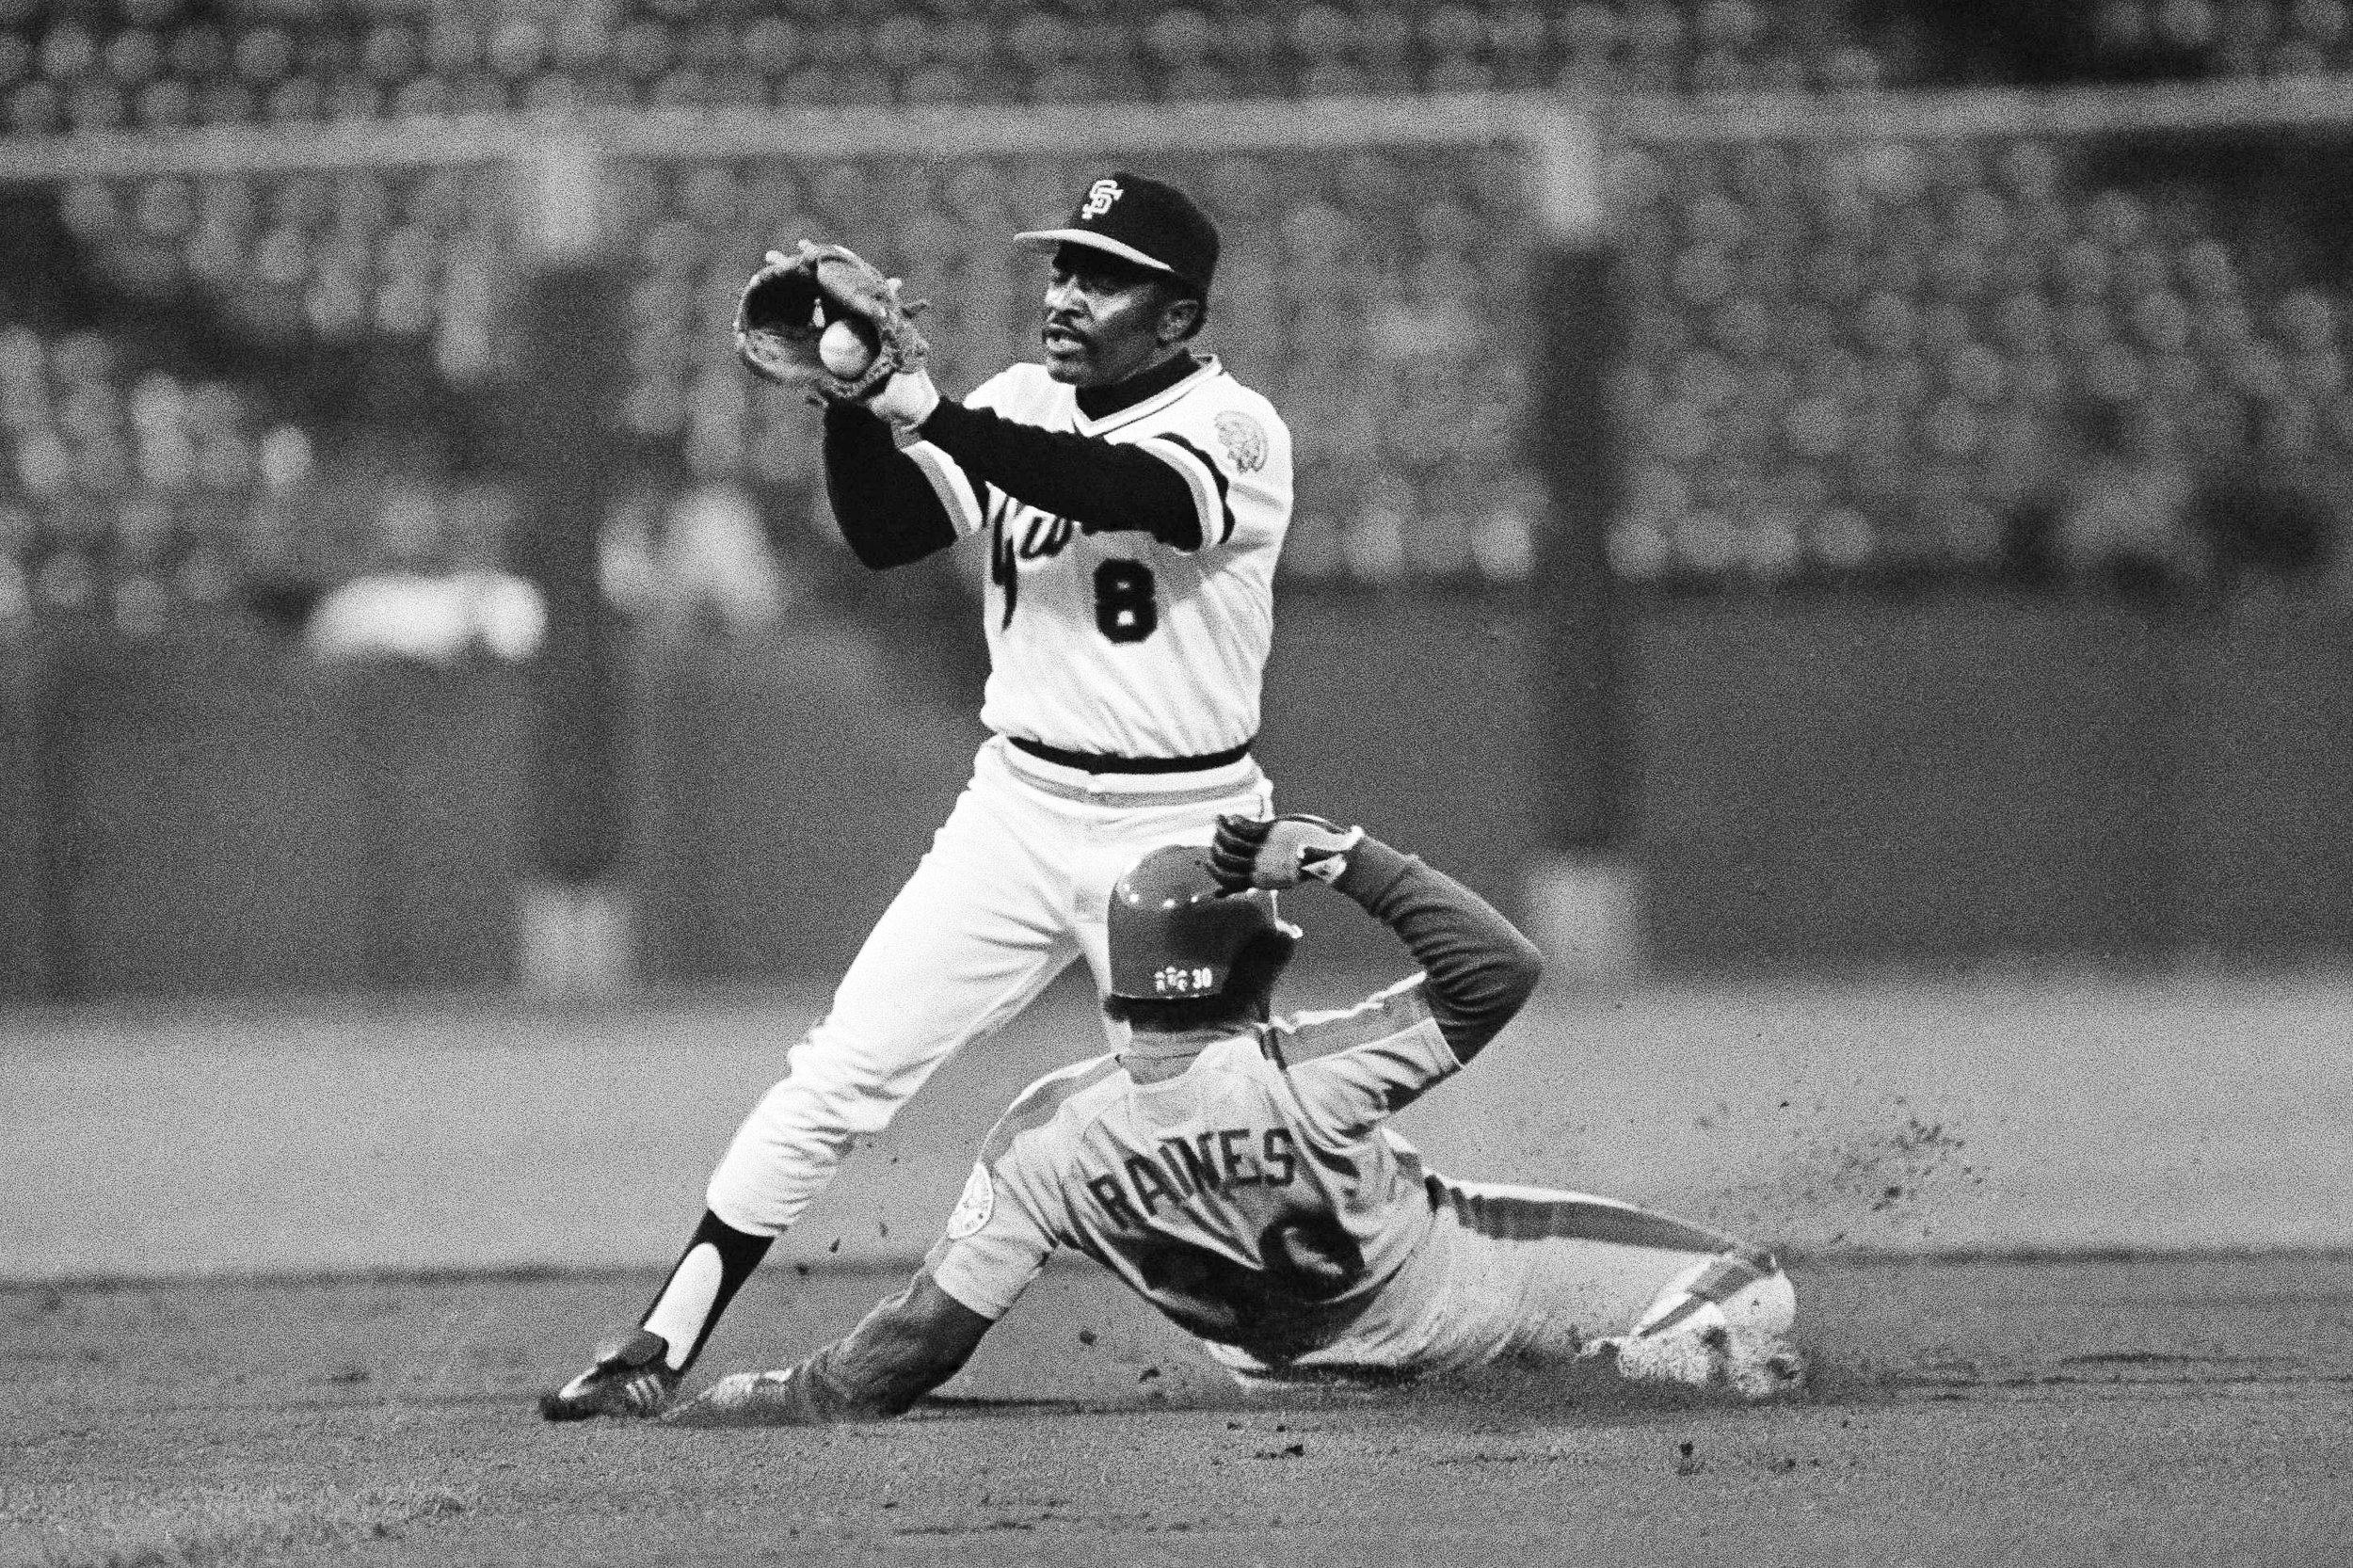 Joe Morgan Cincinnati Reds Second Baseman And Heart Of 1970s Big Red Machine Dies At 77 Joe morgan's letter to hall of fame voters tried to appeal to a group whose opinions the hall clearly who's watching? https www nbcnews com news sports joe morgan cincinnati reds second baseman heart 1970s big red n1242949